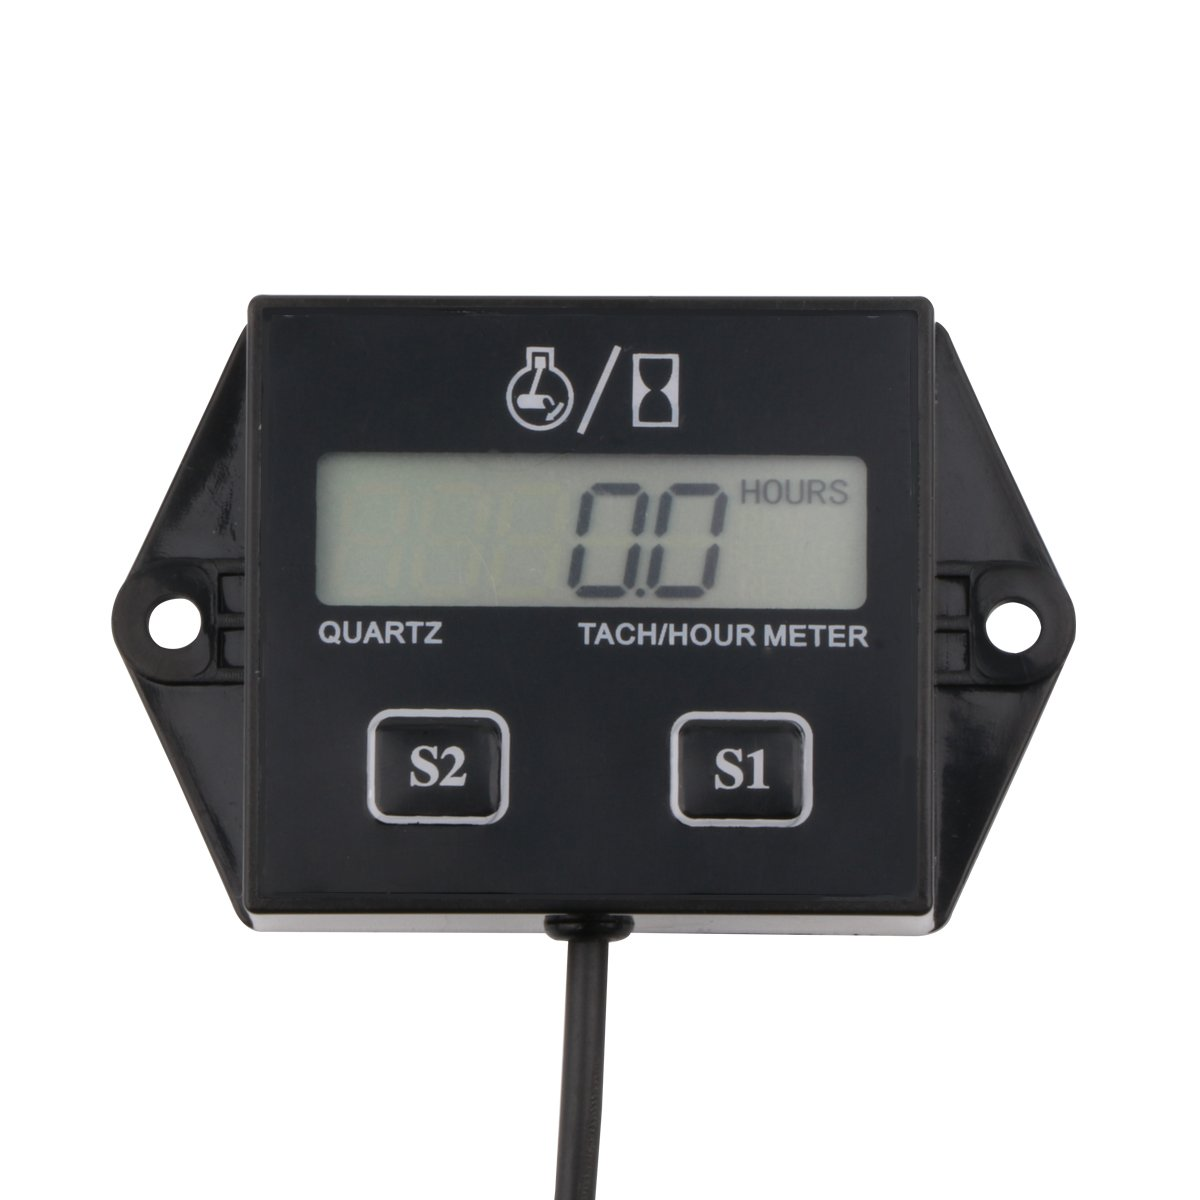 AIMILAR Digital Engine Tach Hour Meter Tachometer Gauge for Small Engine Boat Generator Lawn Mower Chainsaw Outboard Motorcycle Motocross ATV Snowmobile UTV (Non-replaceable Battery without Backlight) BY1045